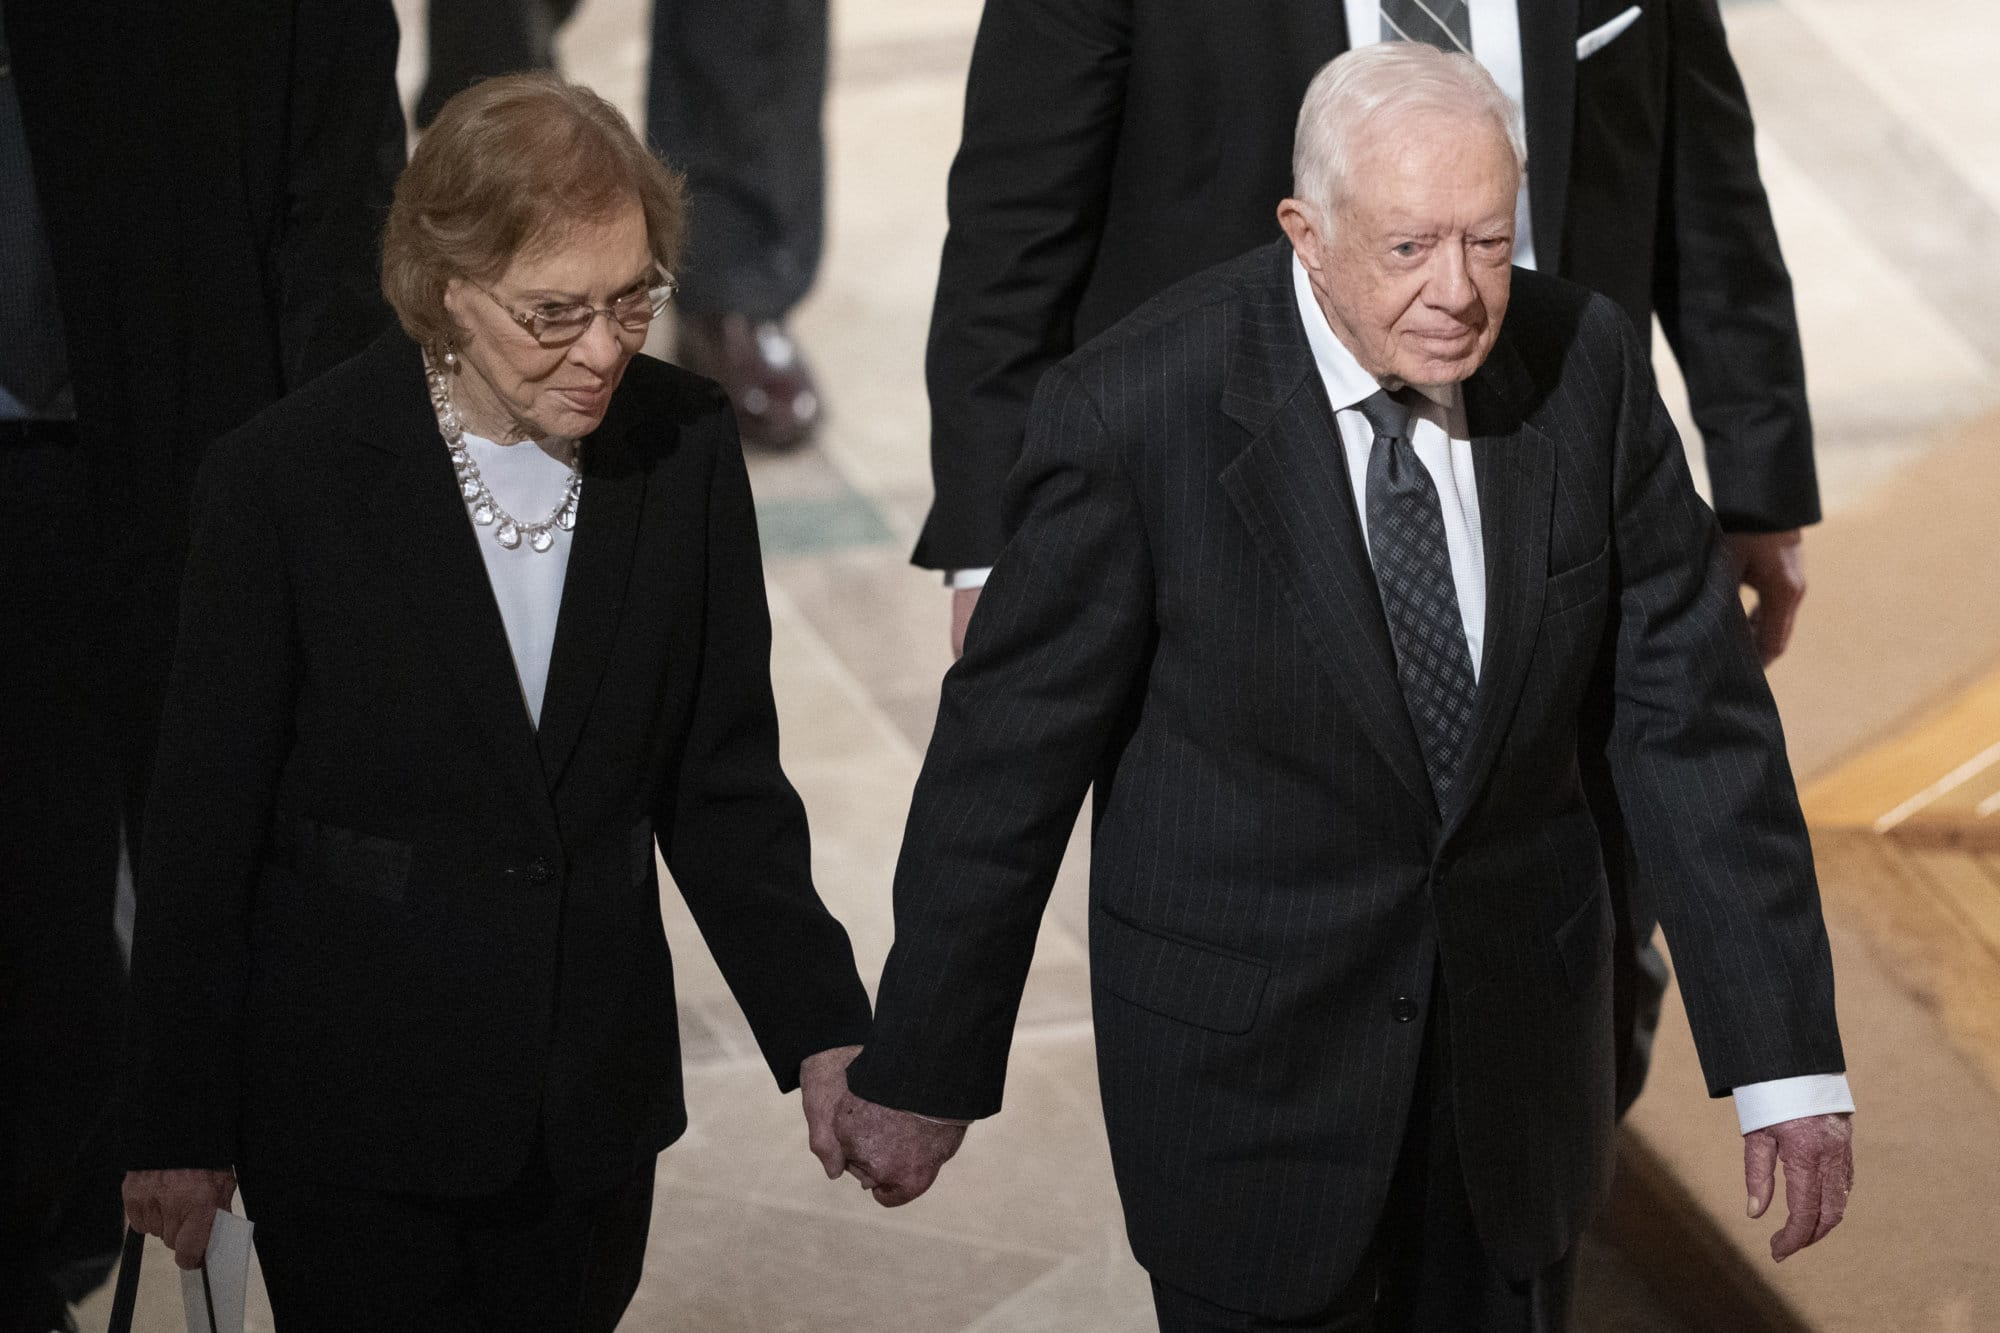 Former President Jimmy Carter, and Rosalynn Carter hold hands as they walk from a State Funeral for former President George H.W. Bush at the National Cathedral, Wednesday, Dec. 5, 2018, in Washington. (AP Photo/Carolyn Kaster)